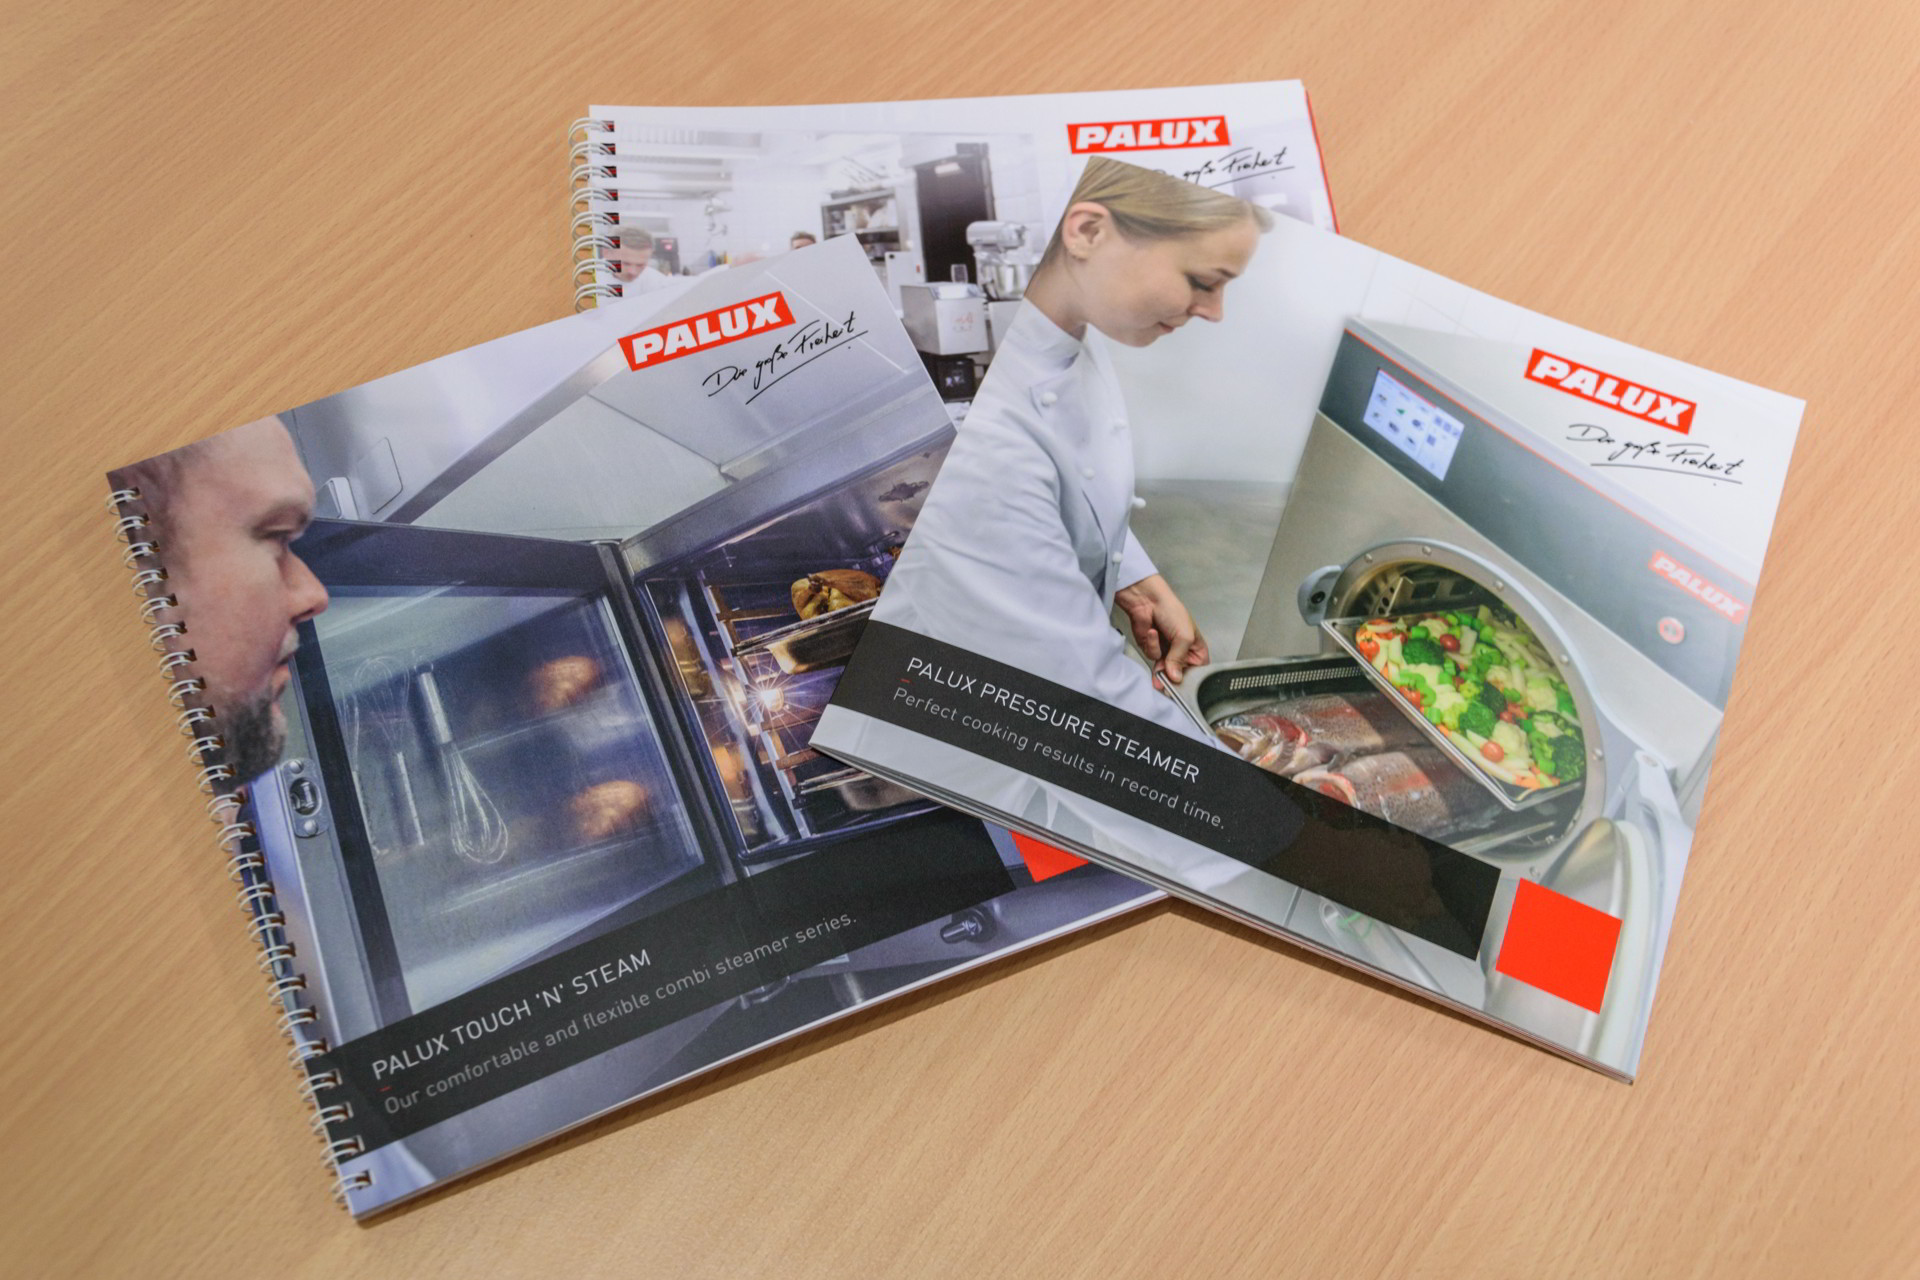 New brochures: Touch 'n' Steam, Pressure Steamer and Product Overview